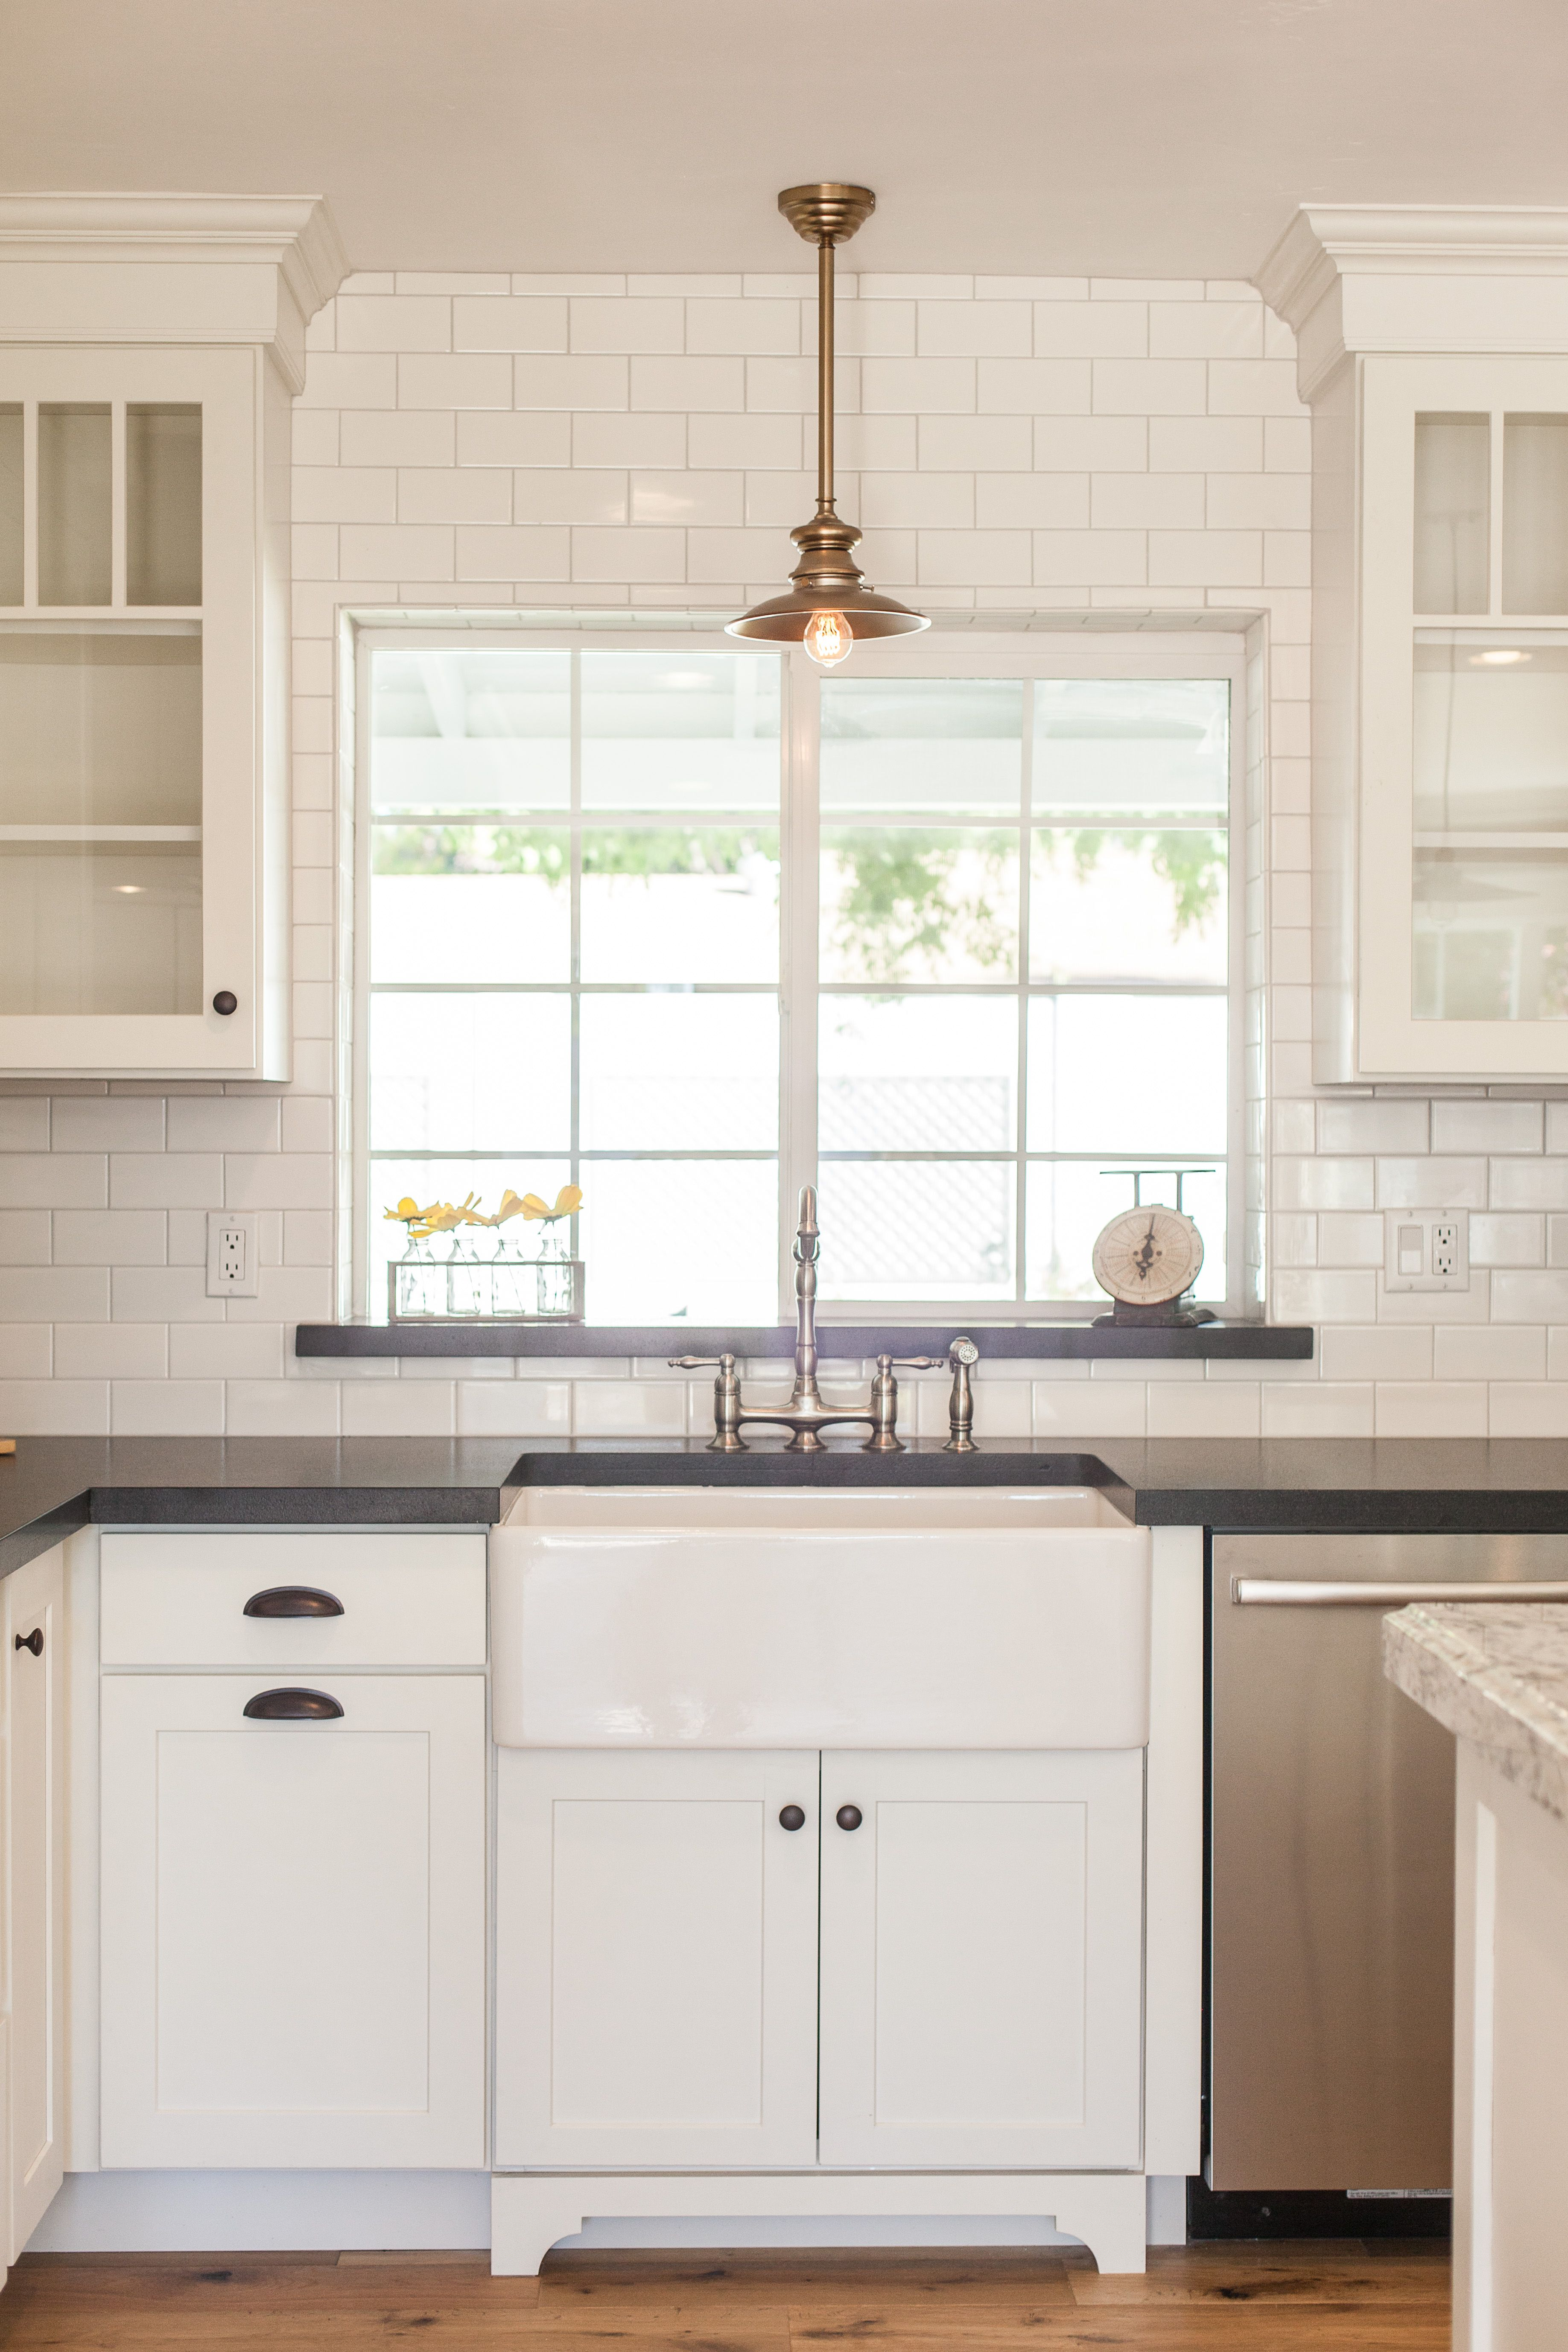 Farmhouse sink with overhead pendant light - by Rafterhouse ...